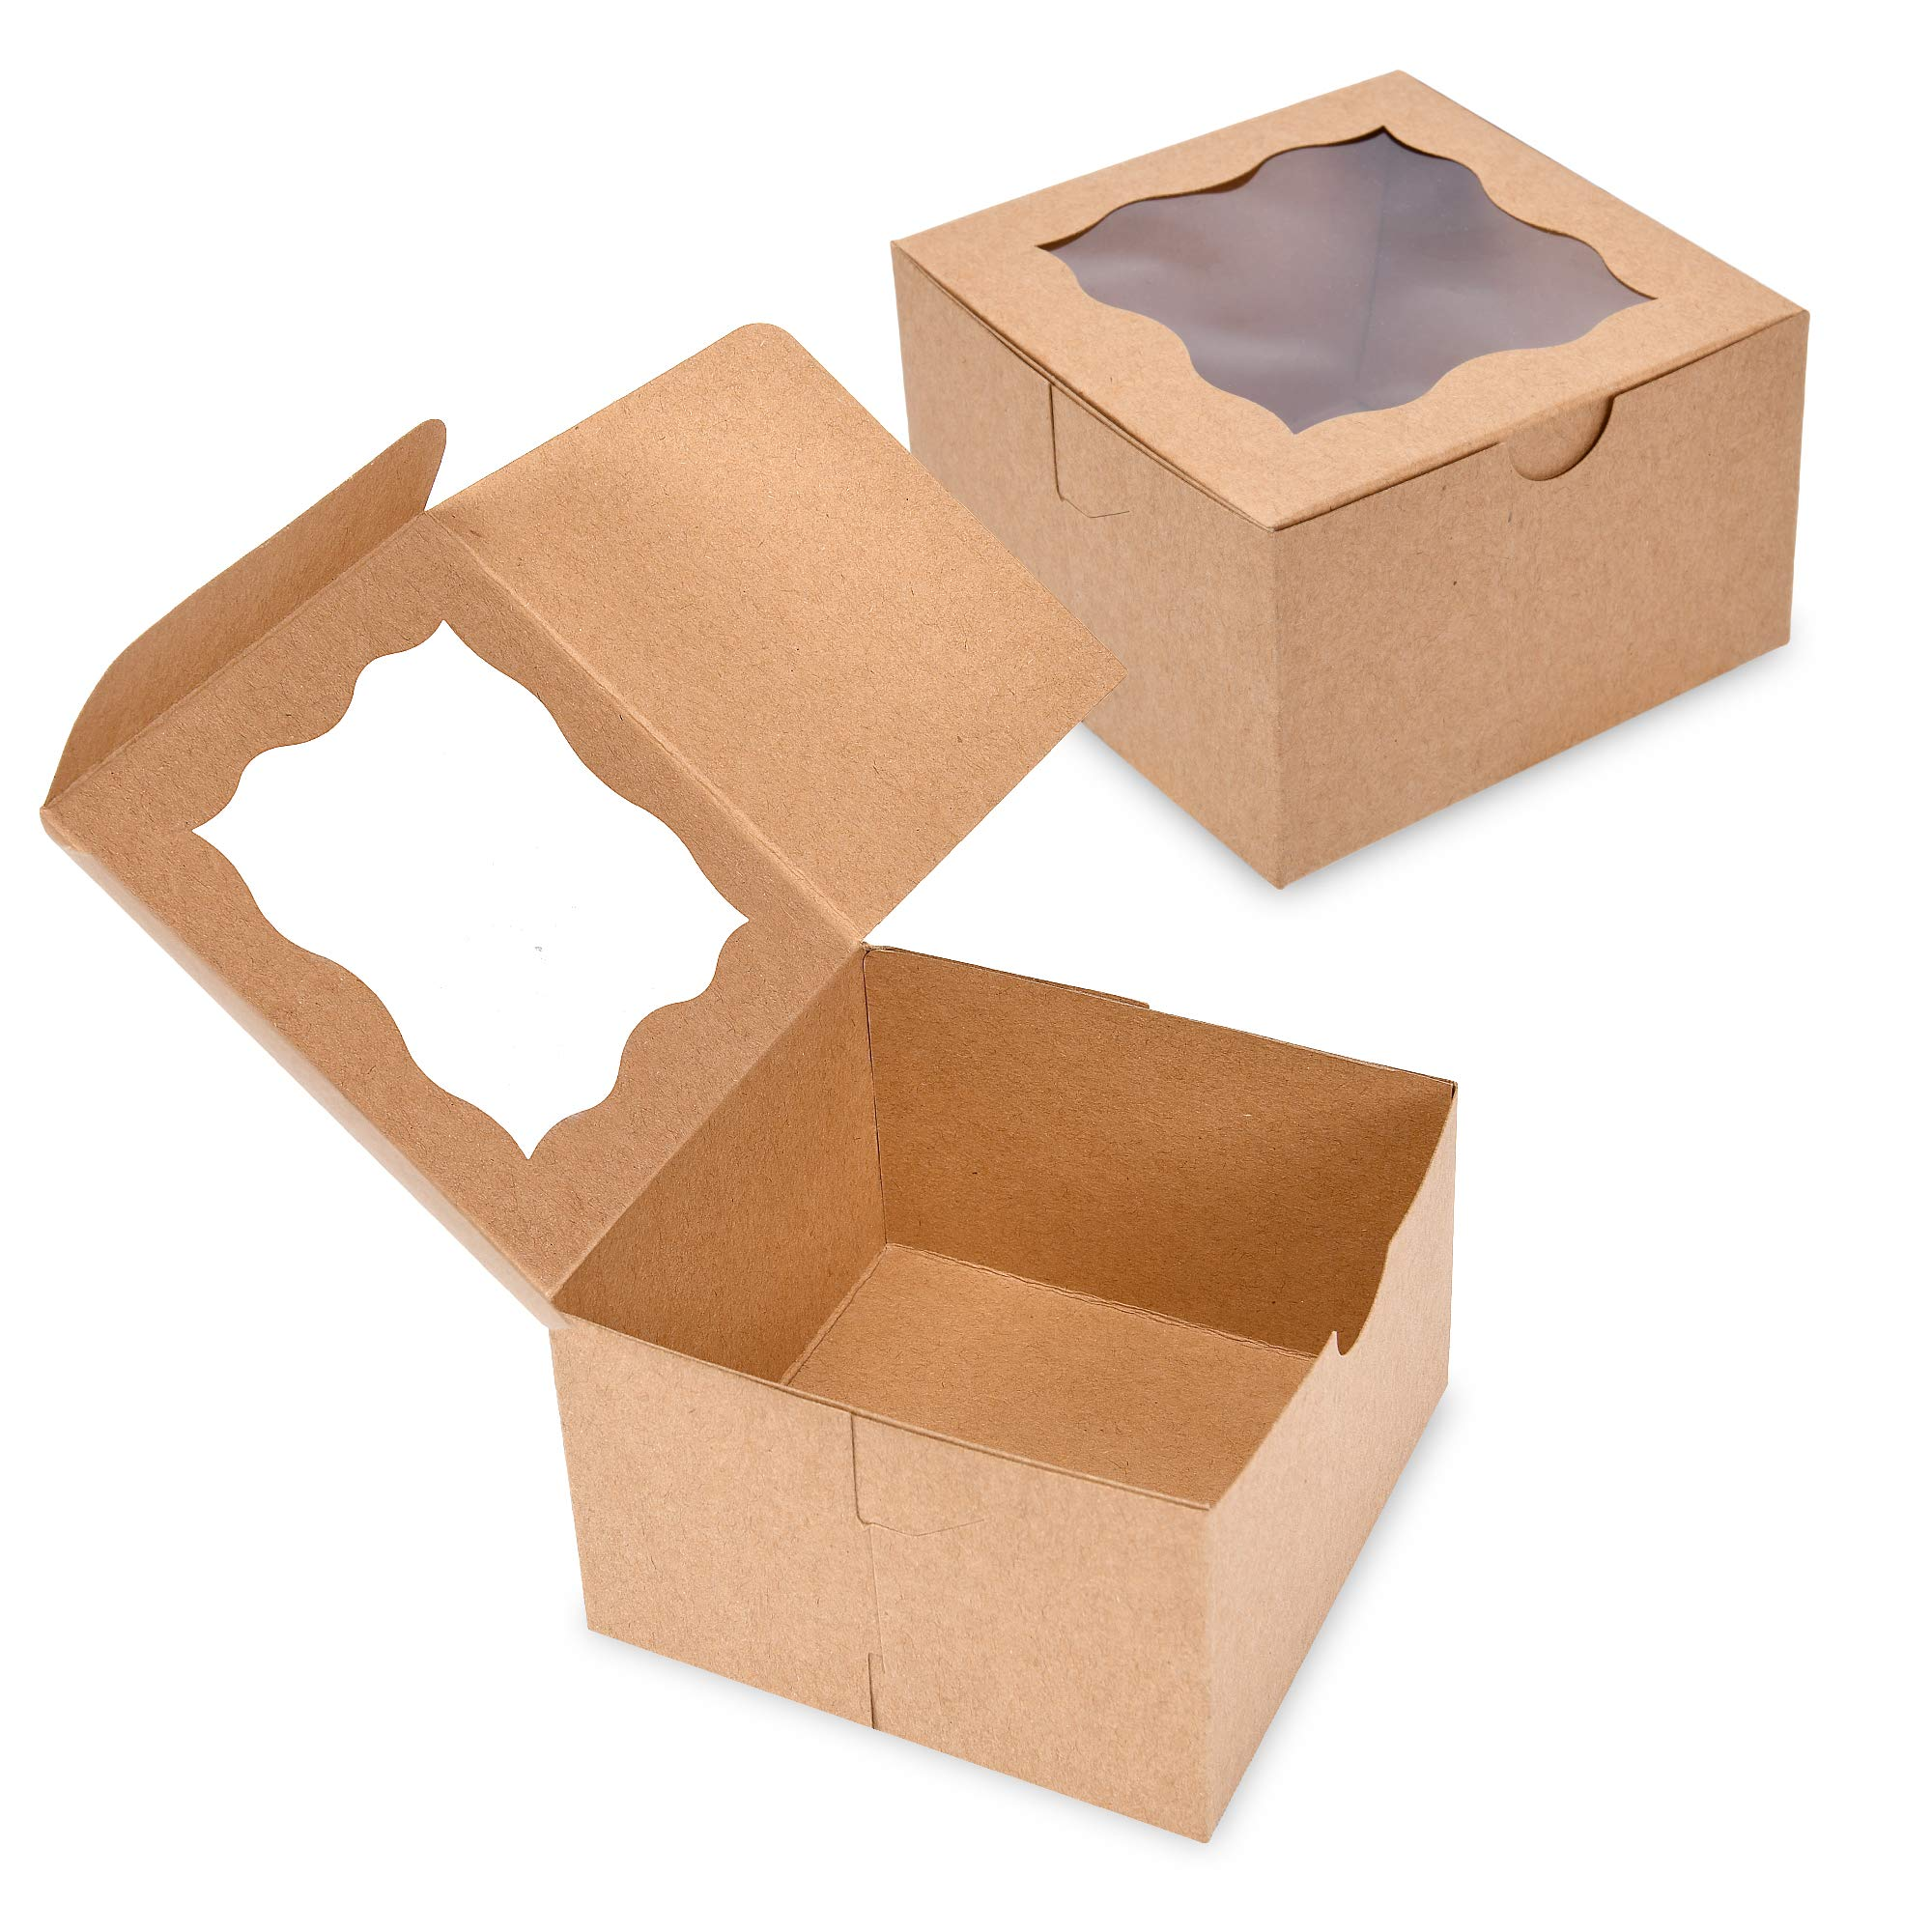 {Pack of 50} White Bakery Boxes with Window 4x4x2.5'' Cute Cardboard Gift Packaging Containers for Cookies, Cupcakes, Small Desserts, Pastry, Wedding Cake, Baby Showers, Donuts, Treats, Party Favors! by Surf City Supplies (Image #7)